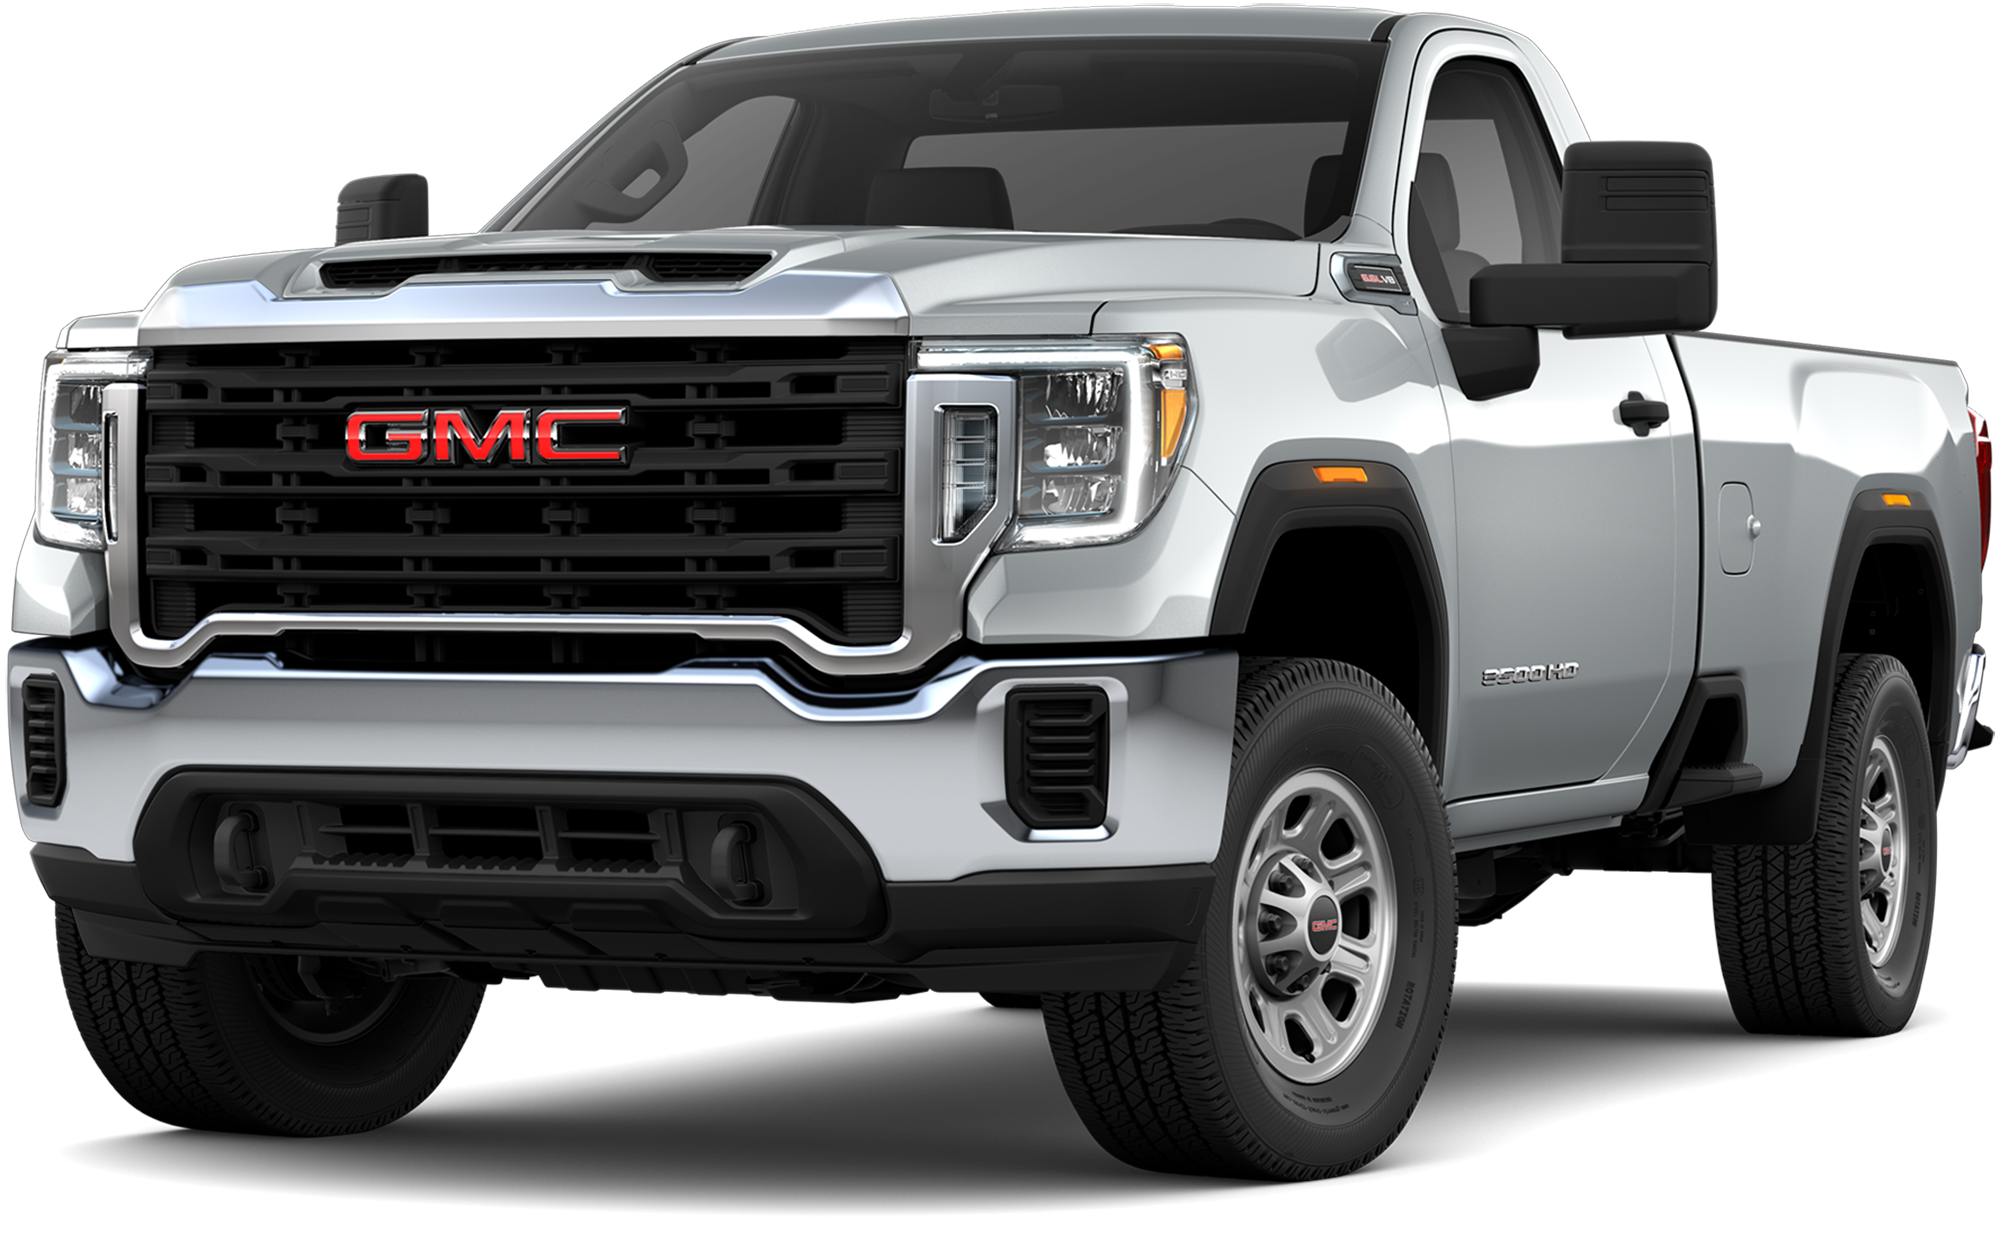 2020 Gmc Sierra 3500hd Incentives Specials Offers In Fremont Oh